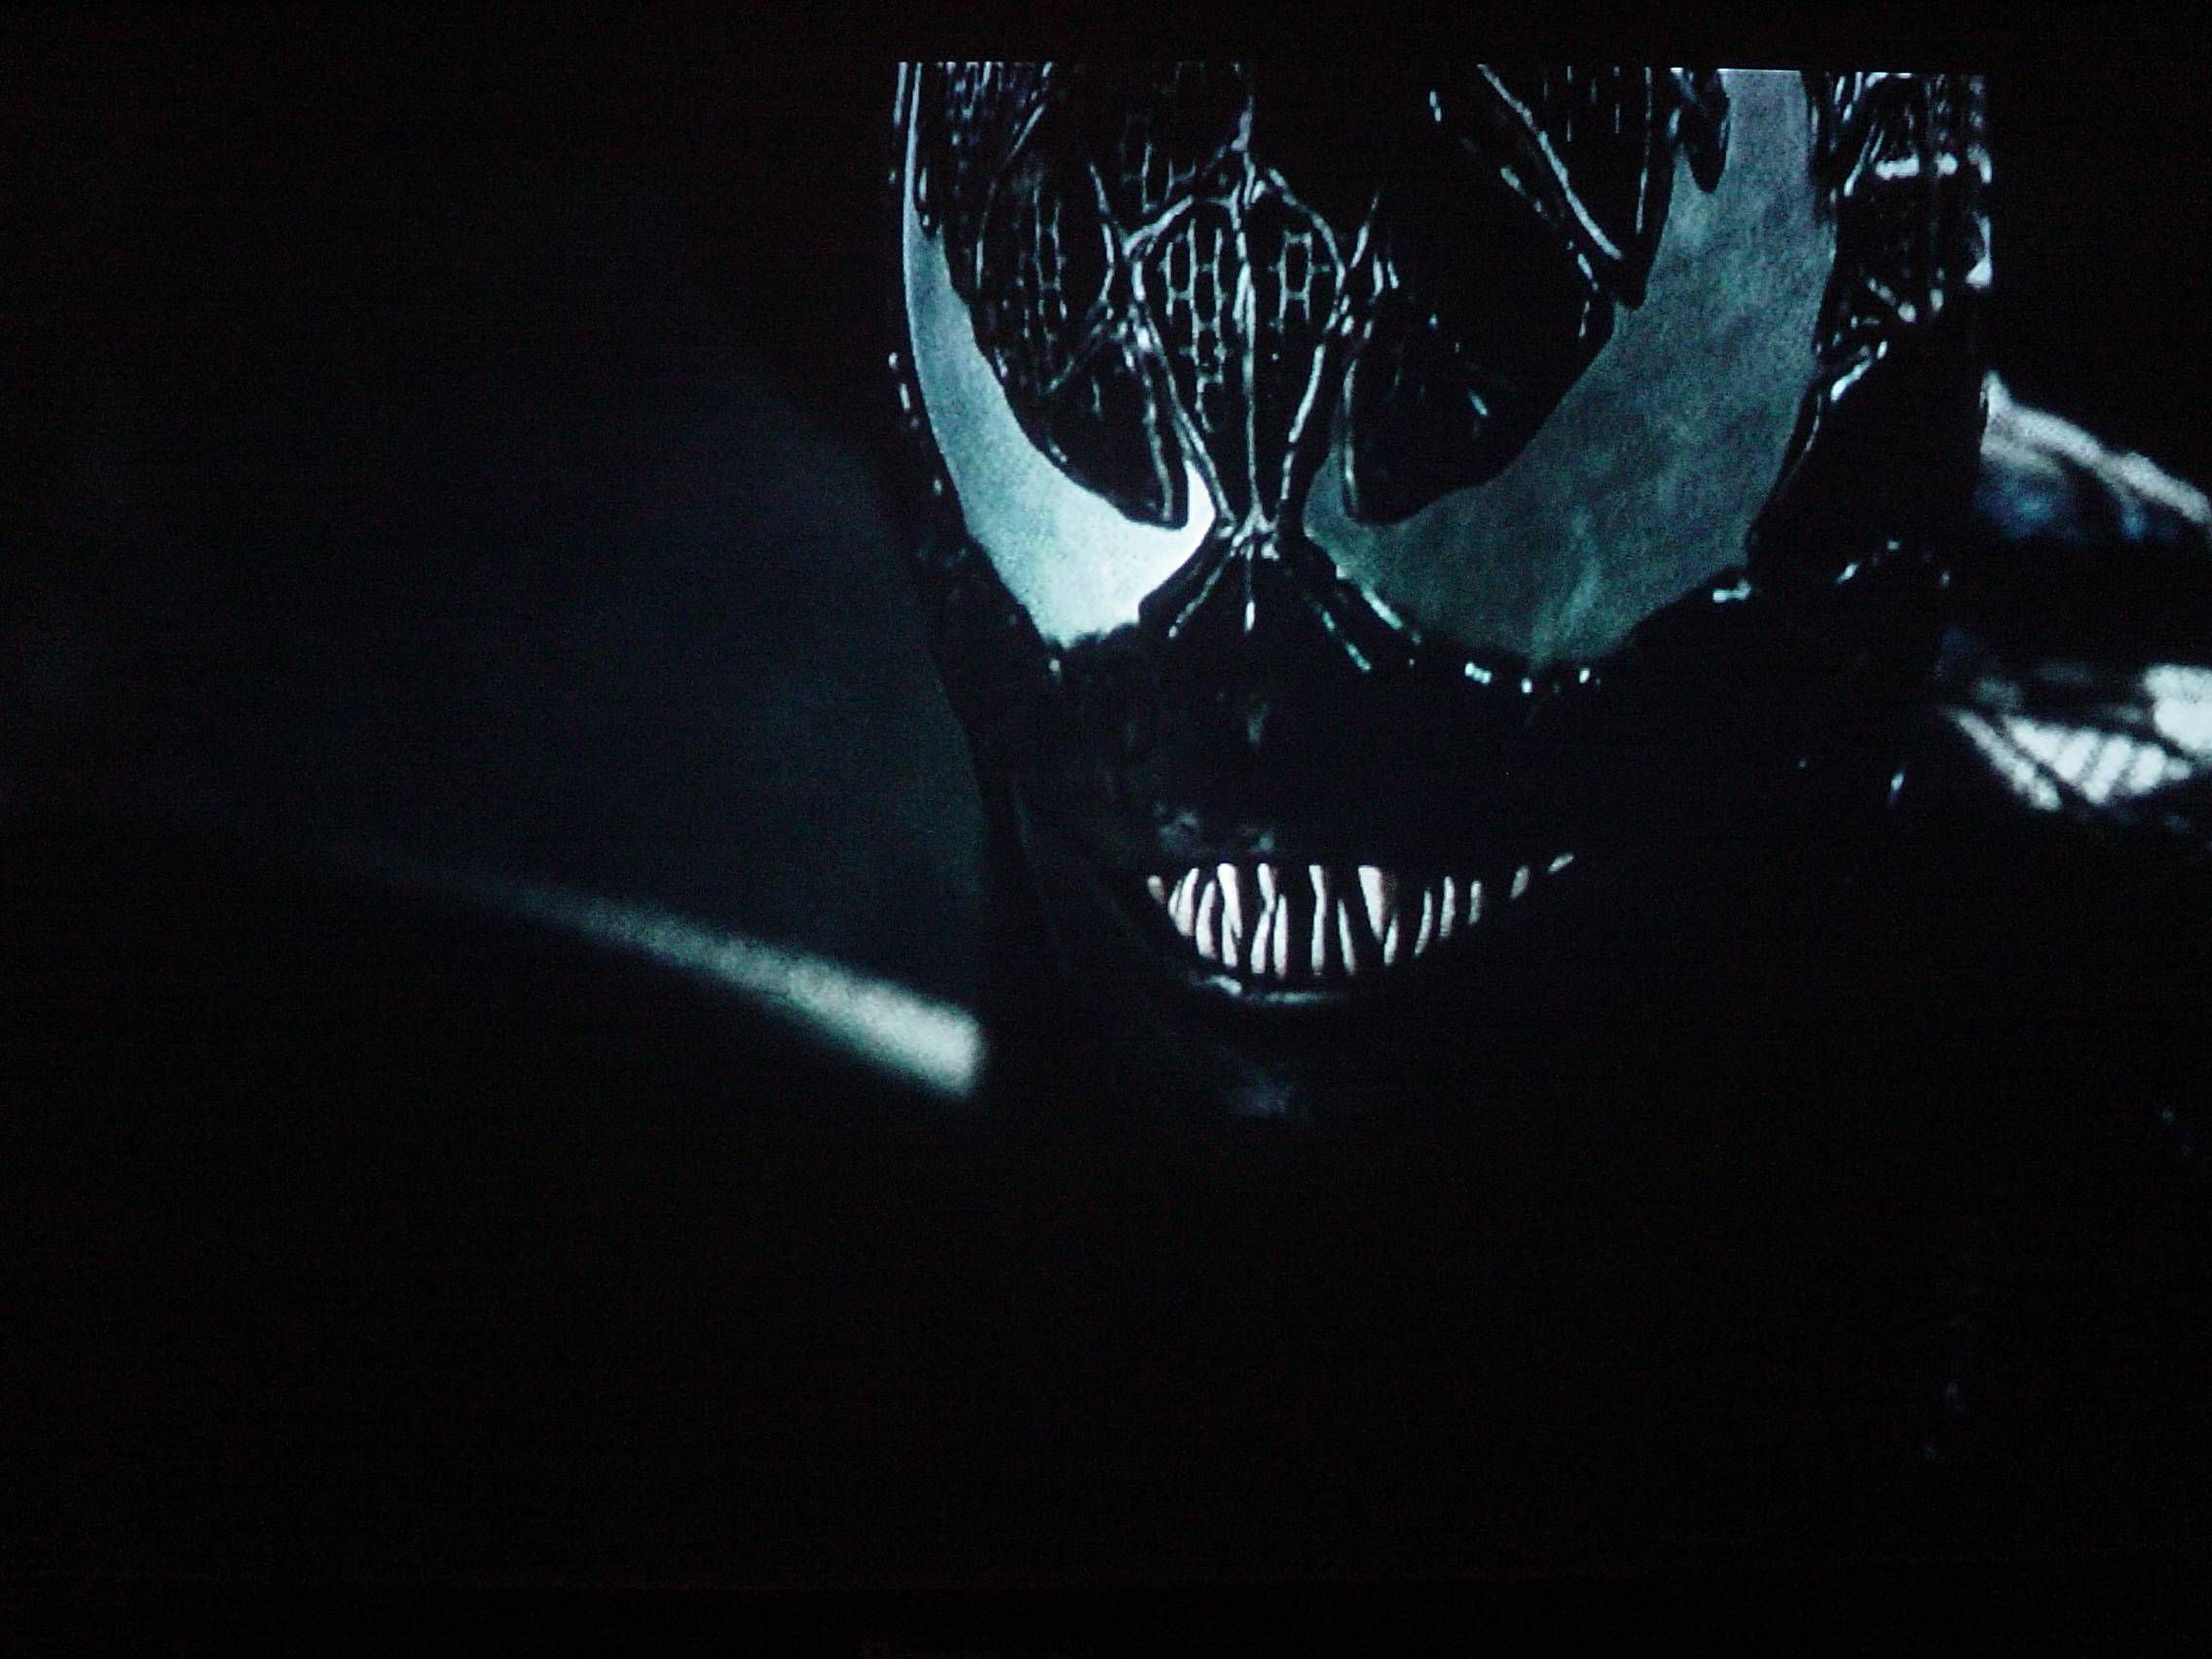 Pin by FSMJ on VENOM! Spiderman, Guy pictures, High